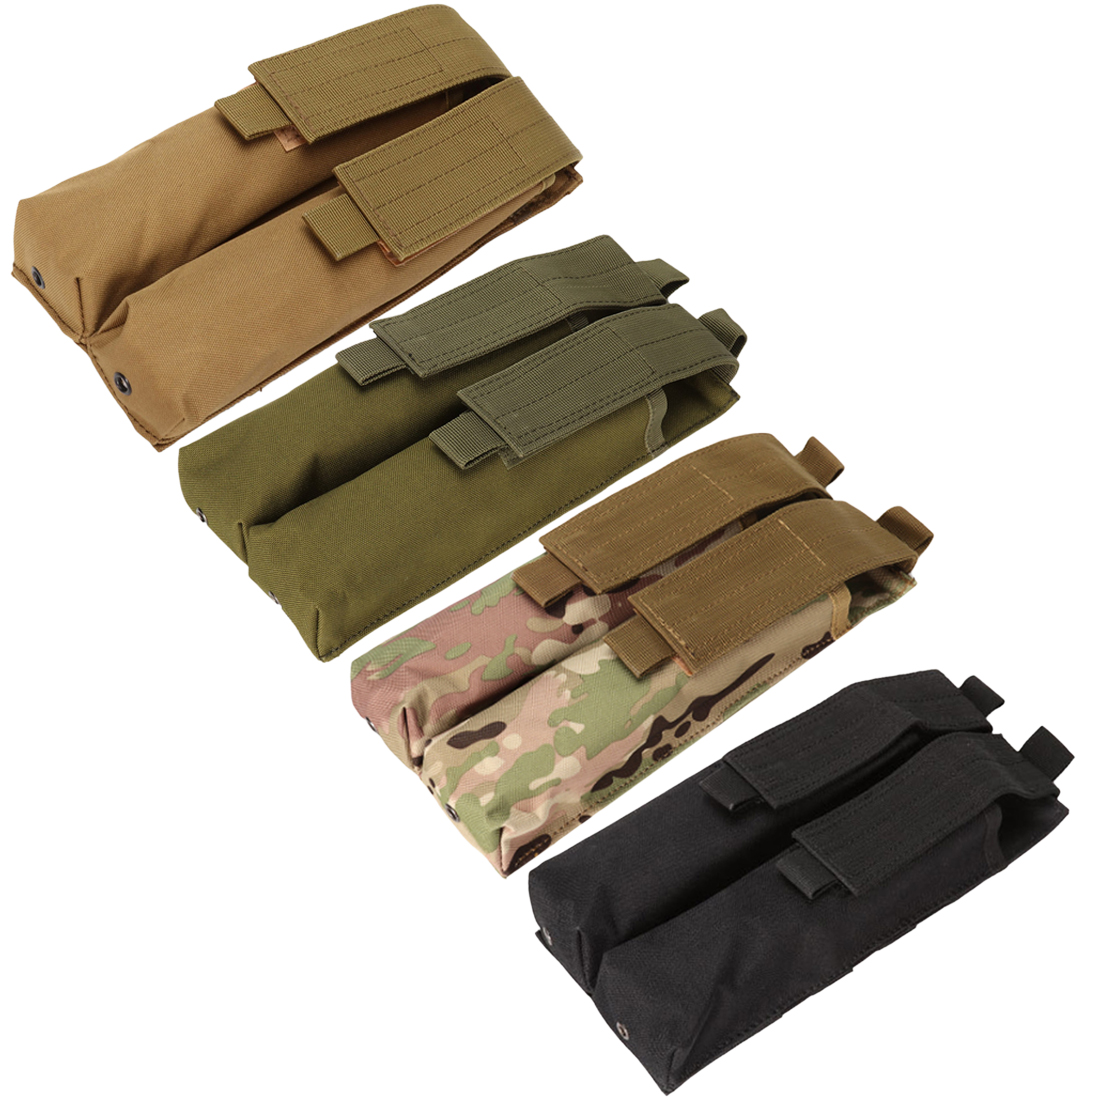 Molle Magazine Pouch for P90 Magazine and Worker short darts Magazine   Camouflage-in Paintball Accessories from Sports & Entertainment